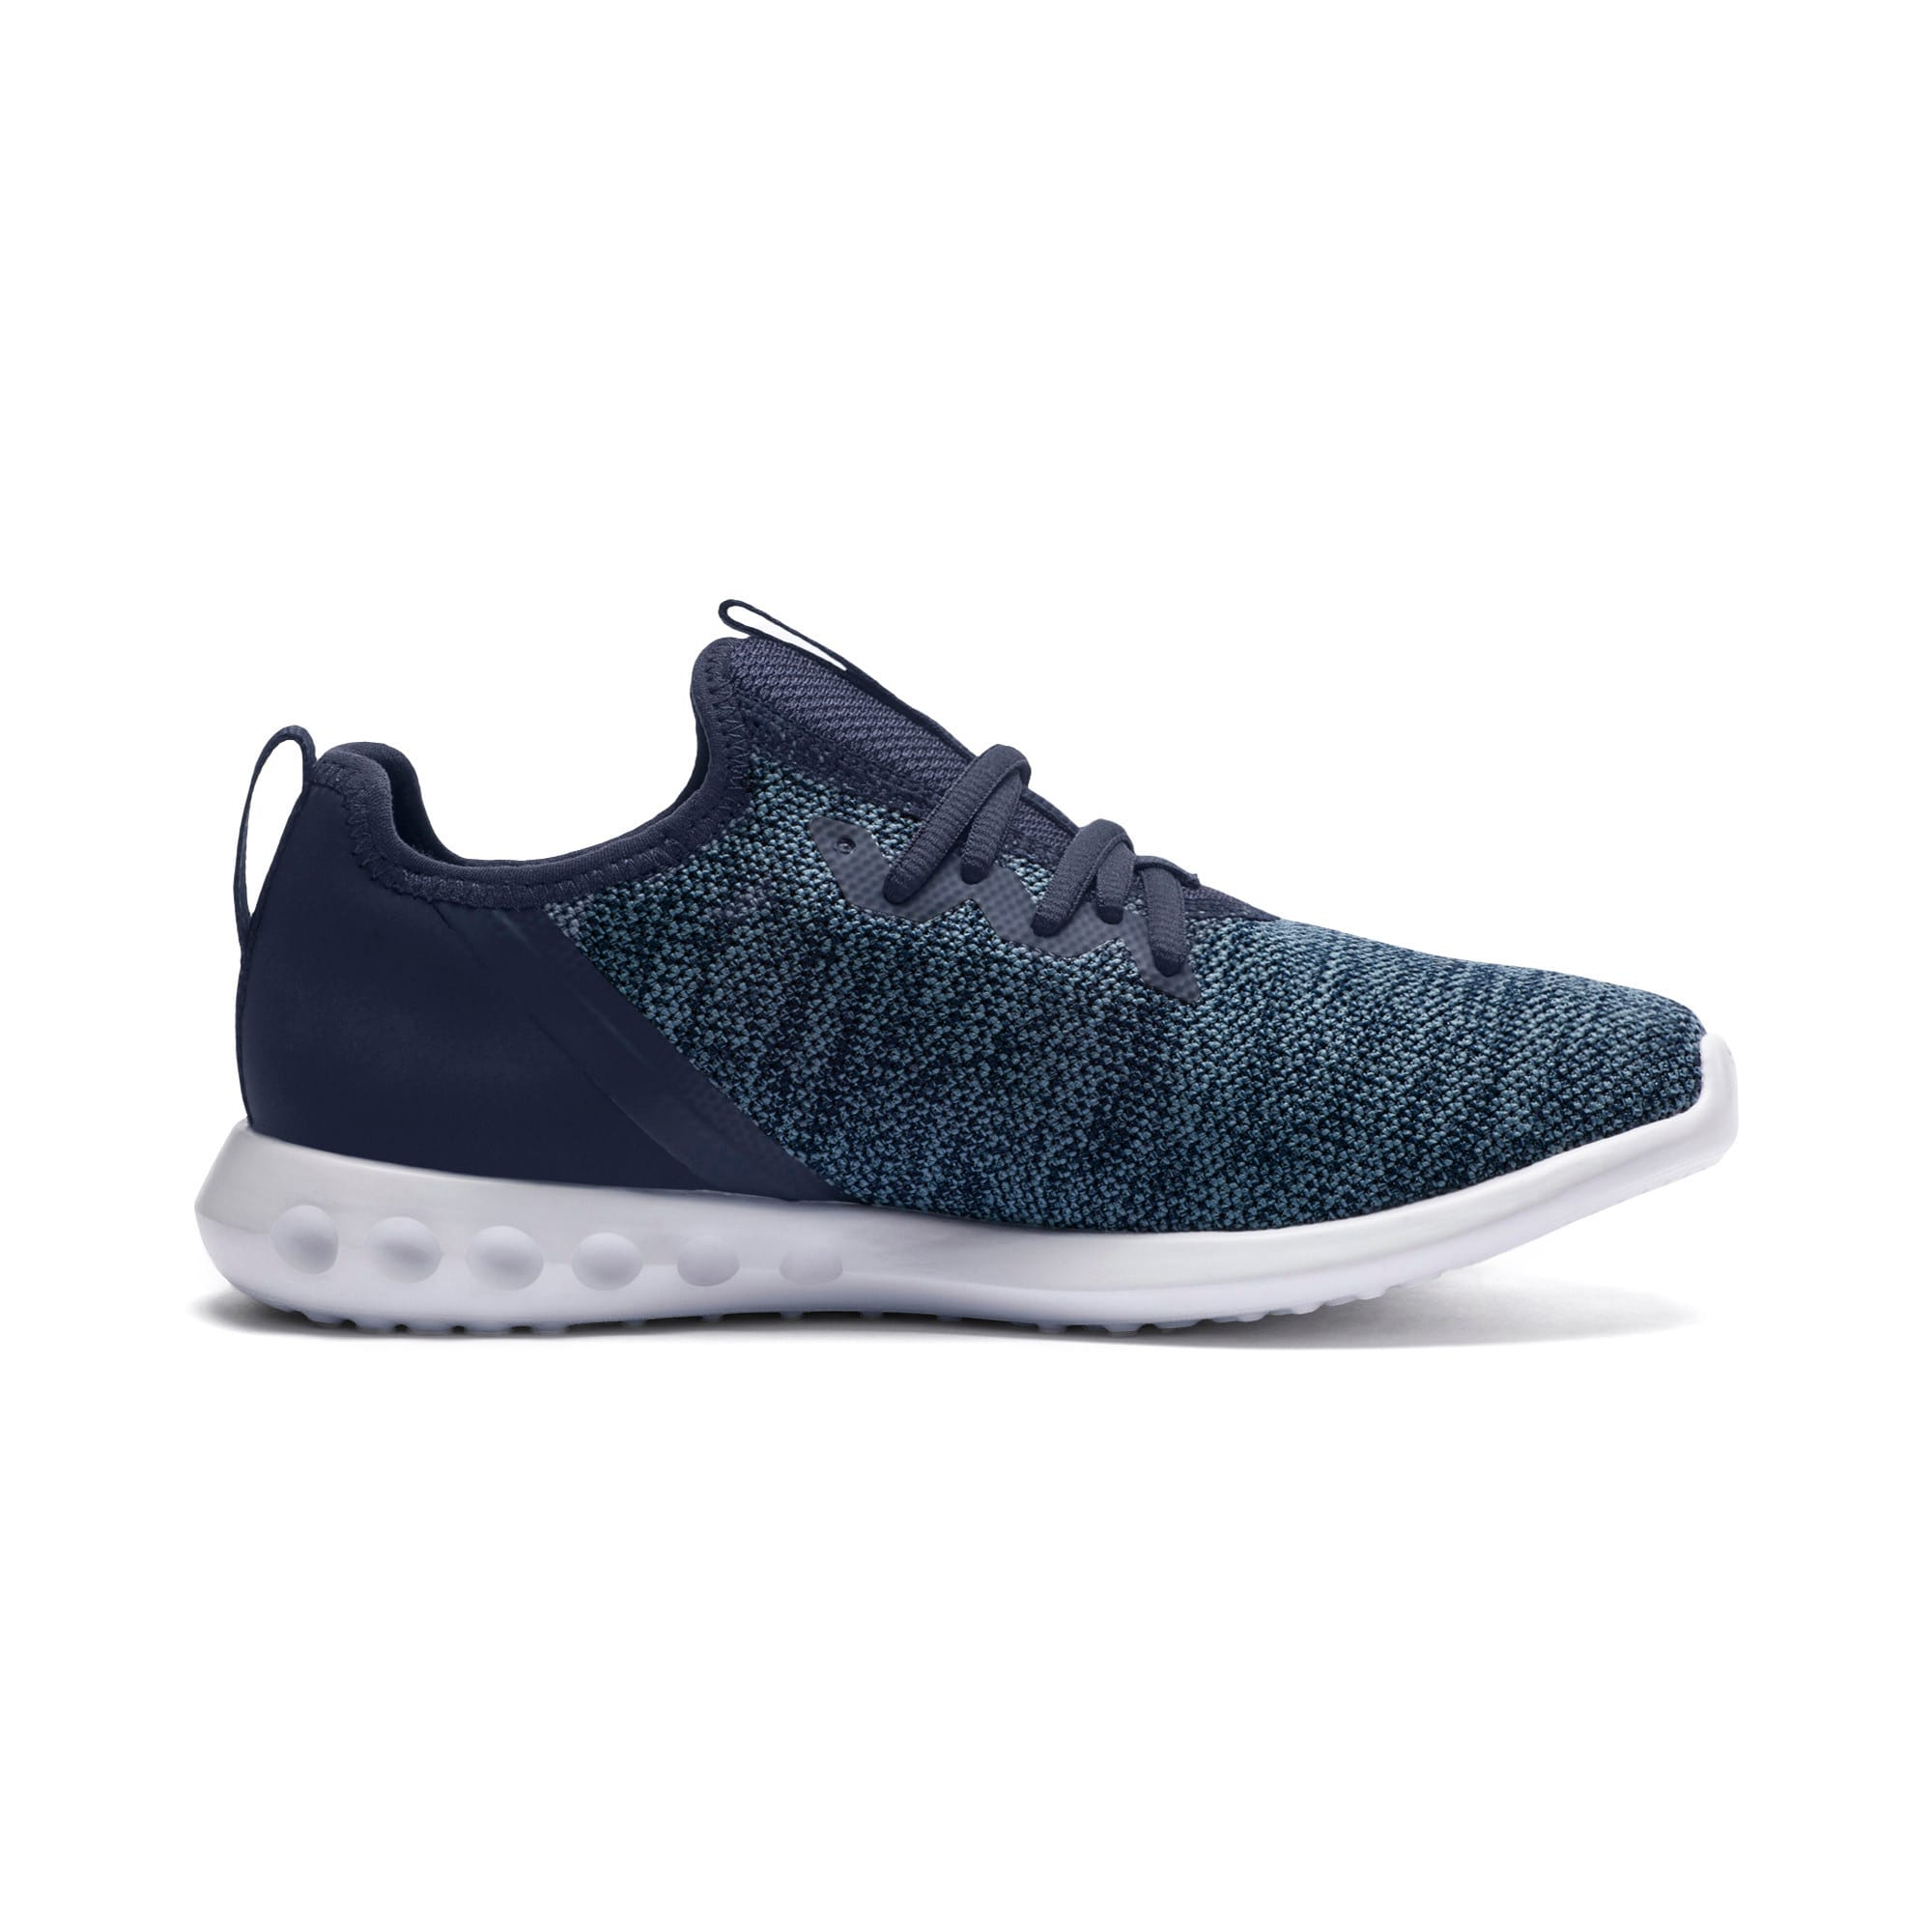 Thumbnail 5 of Carson 2 X Knit Women's Running Shoes, Peacoat-CERULEAN, medium-IND